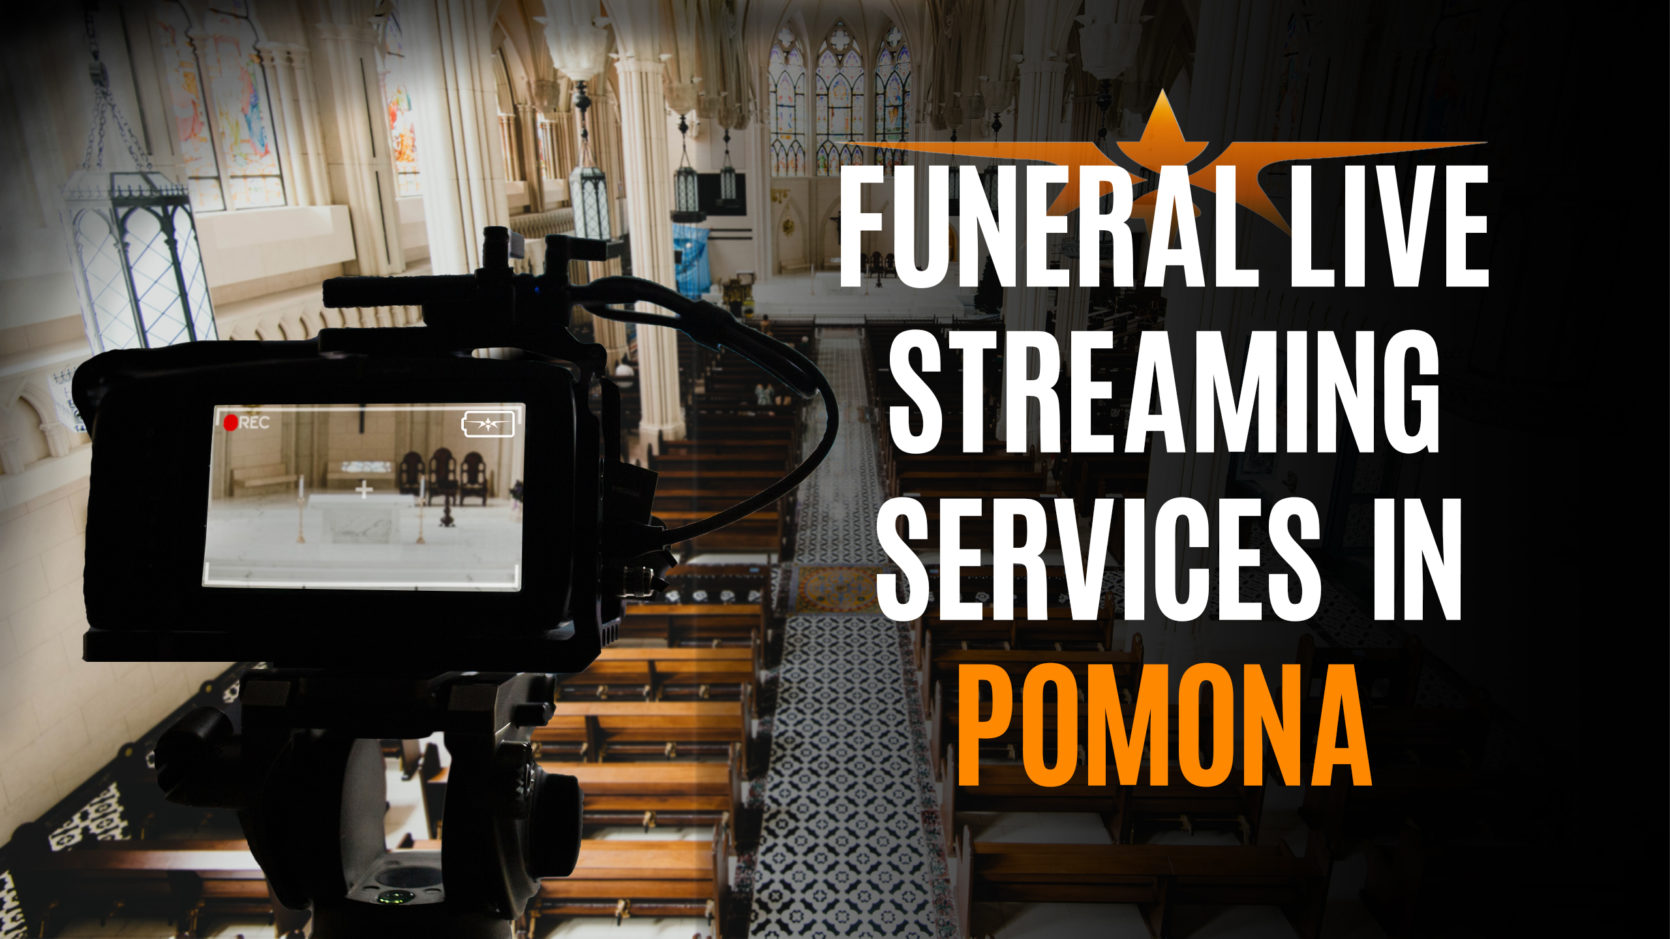 Funeral Live Streaming Services in Pomona